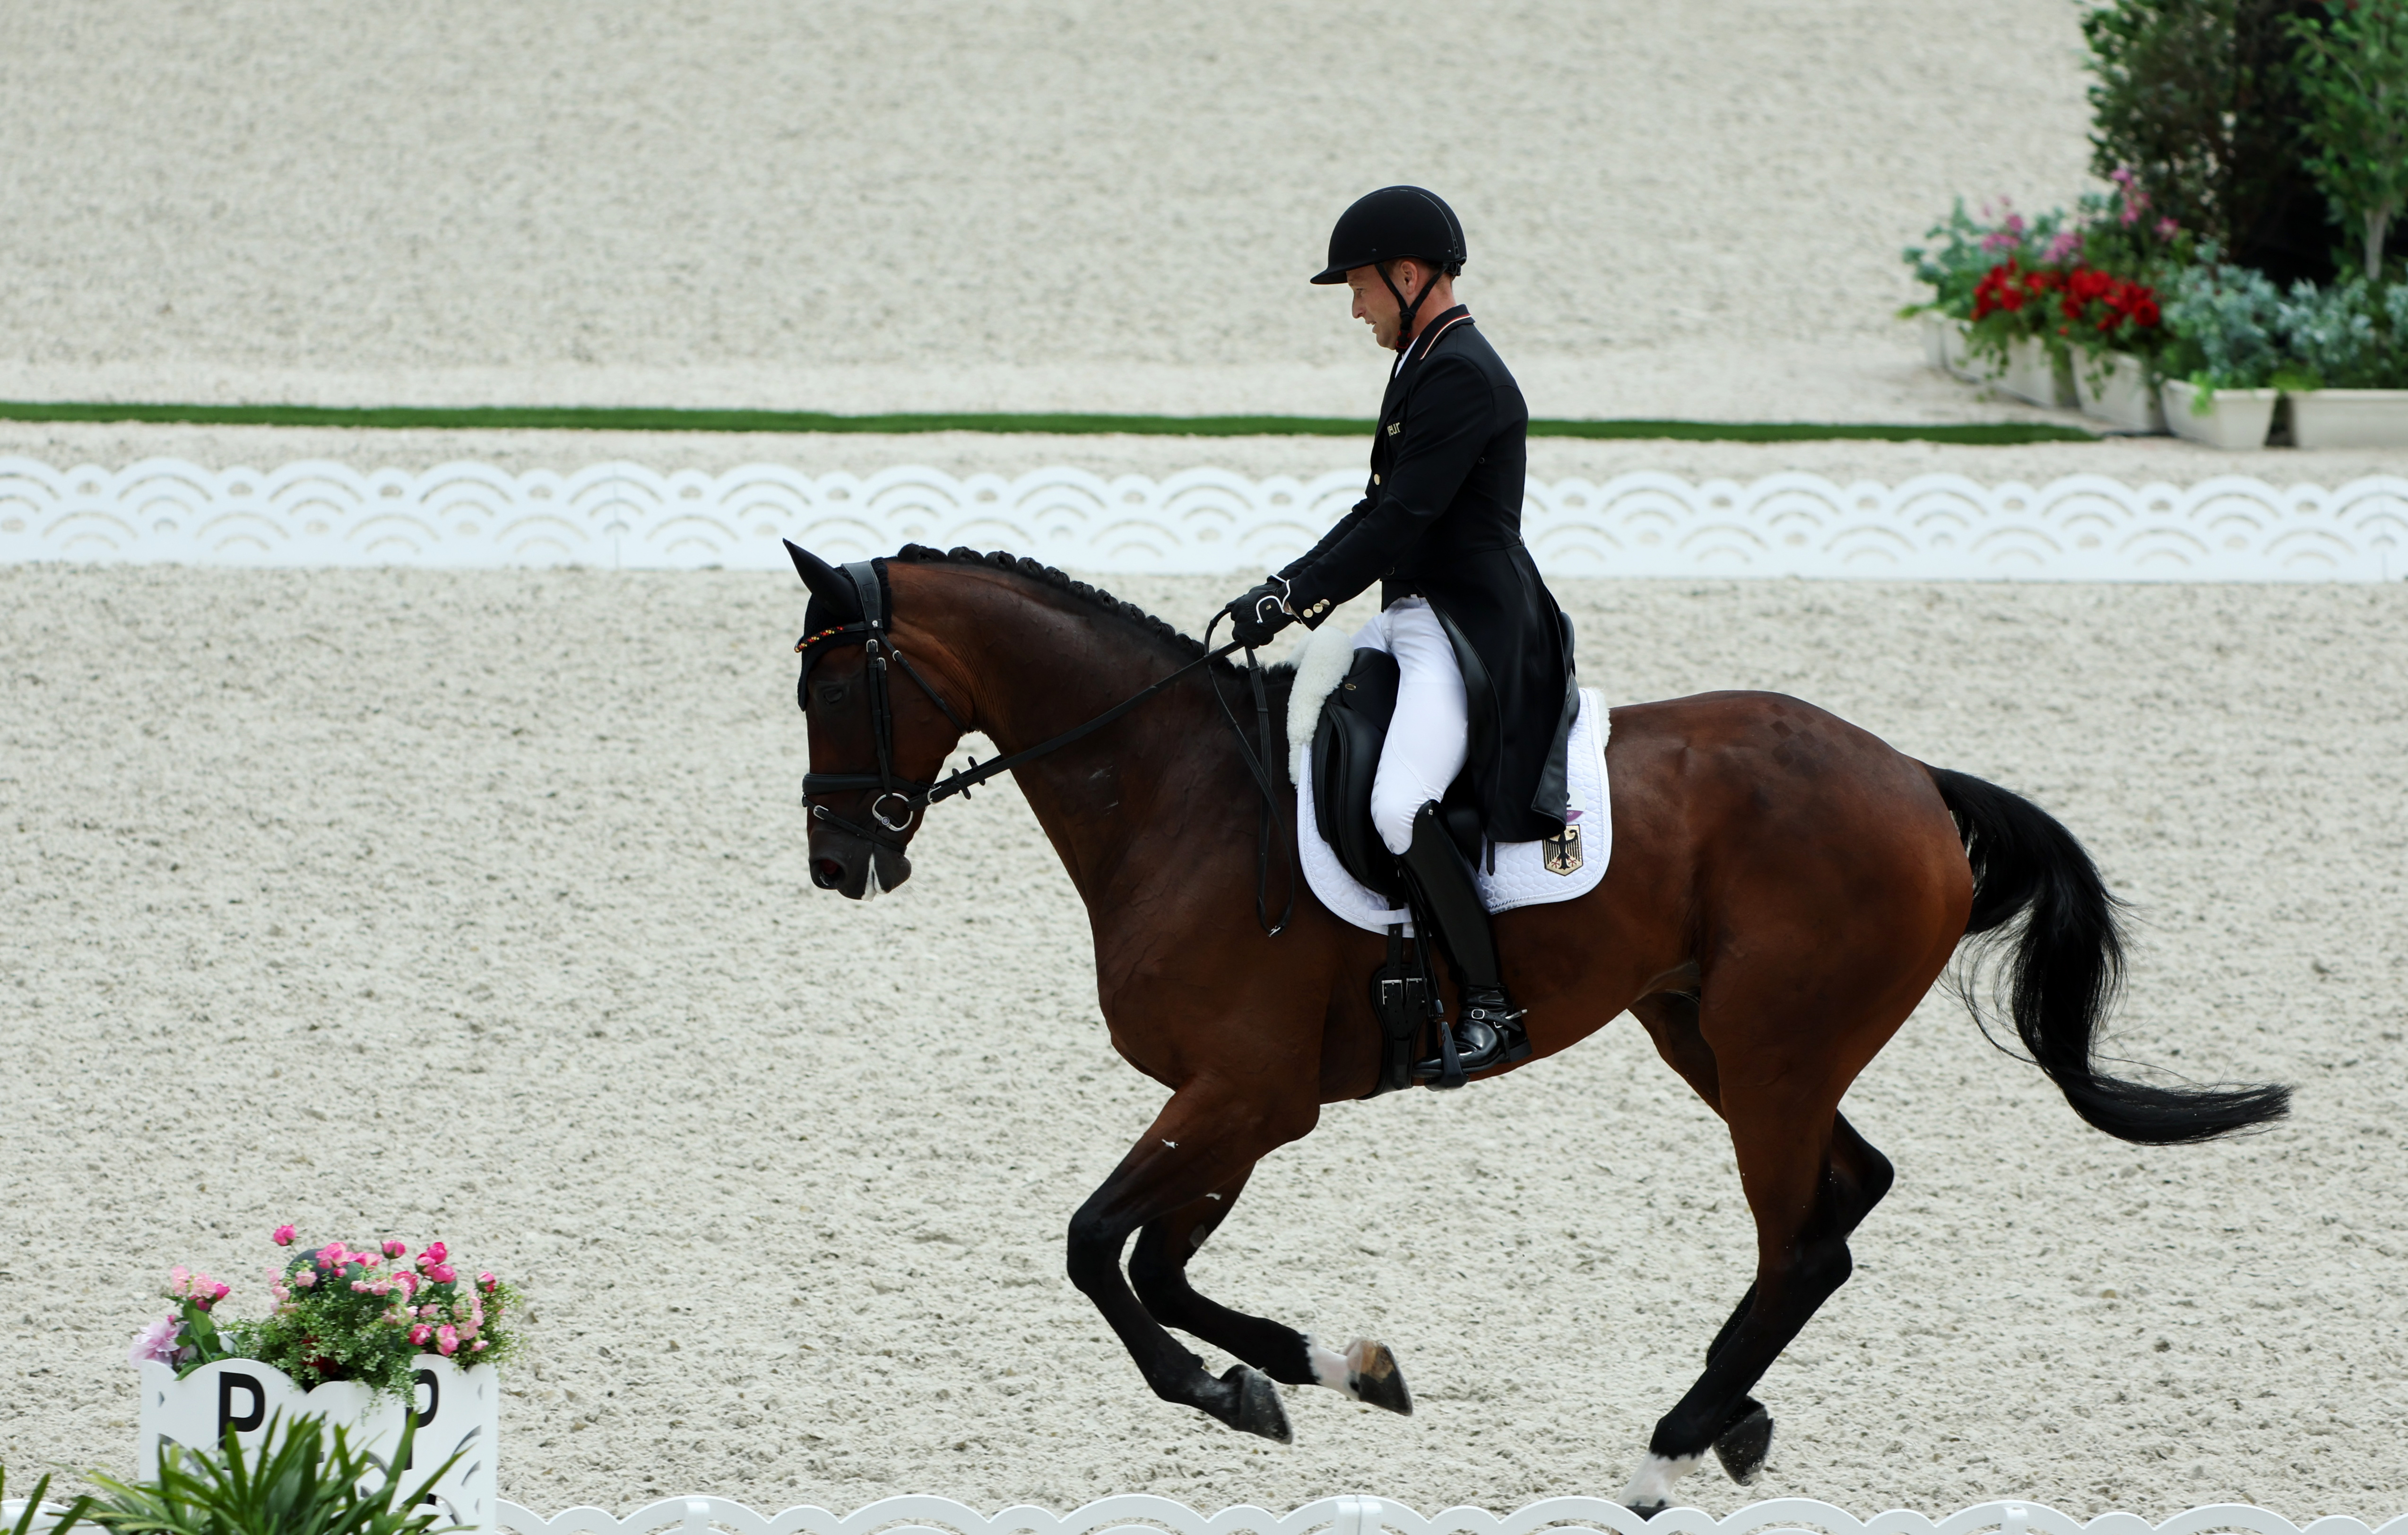 Tokyo 2020 Olympics - Equestrian - Eventing - Dressage Individual - Day 2 - Equestrian Park - Tokyo, Japan - July 31, 2021.  Michael Jung of Germany on his horse Chipmunk Frh compete REUTERS/Alkis Konstantinidis